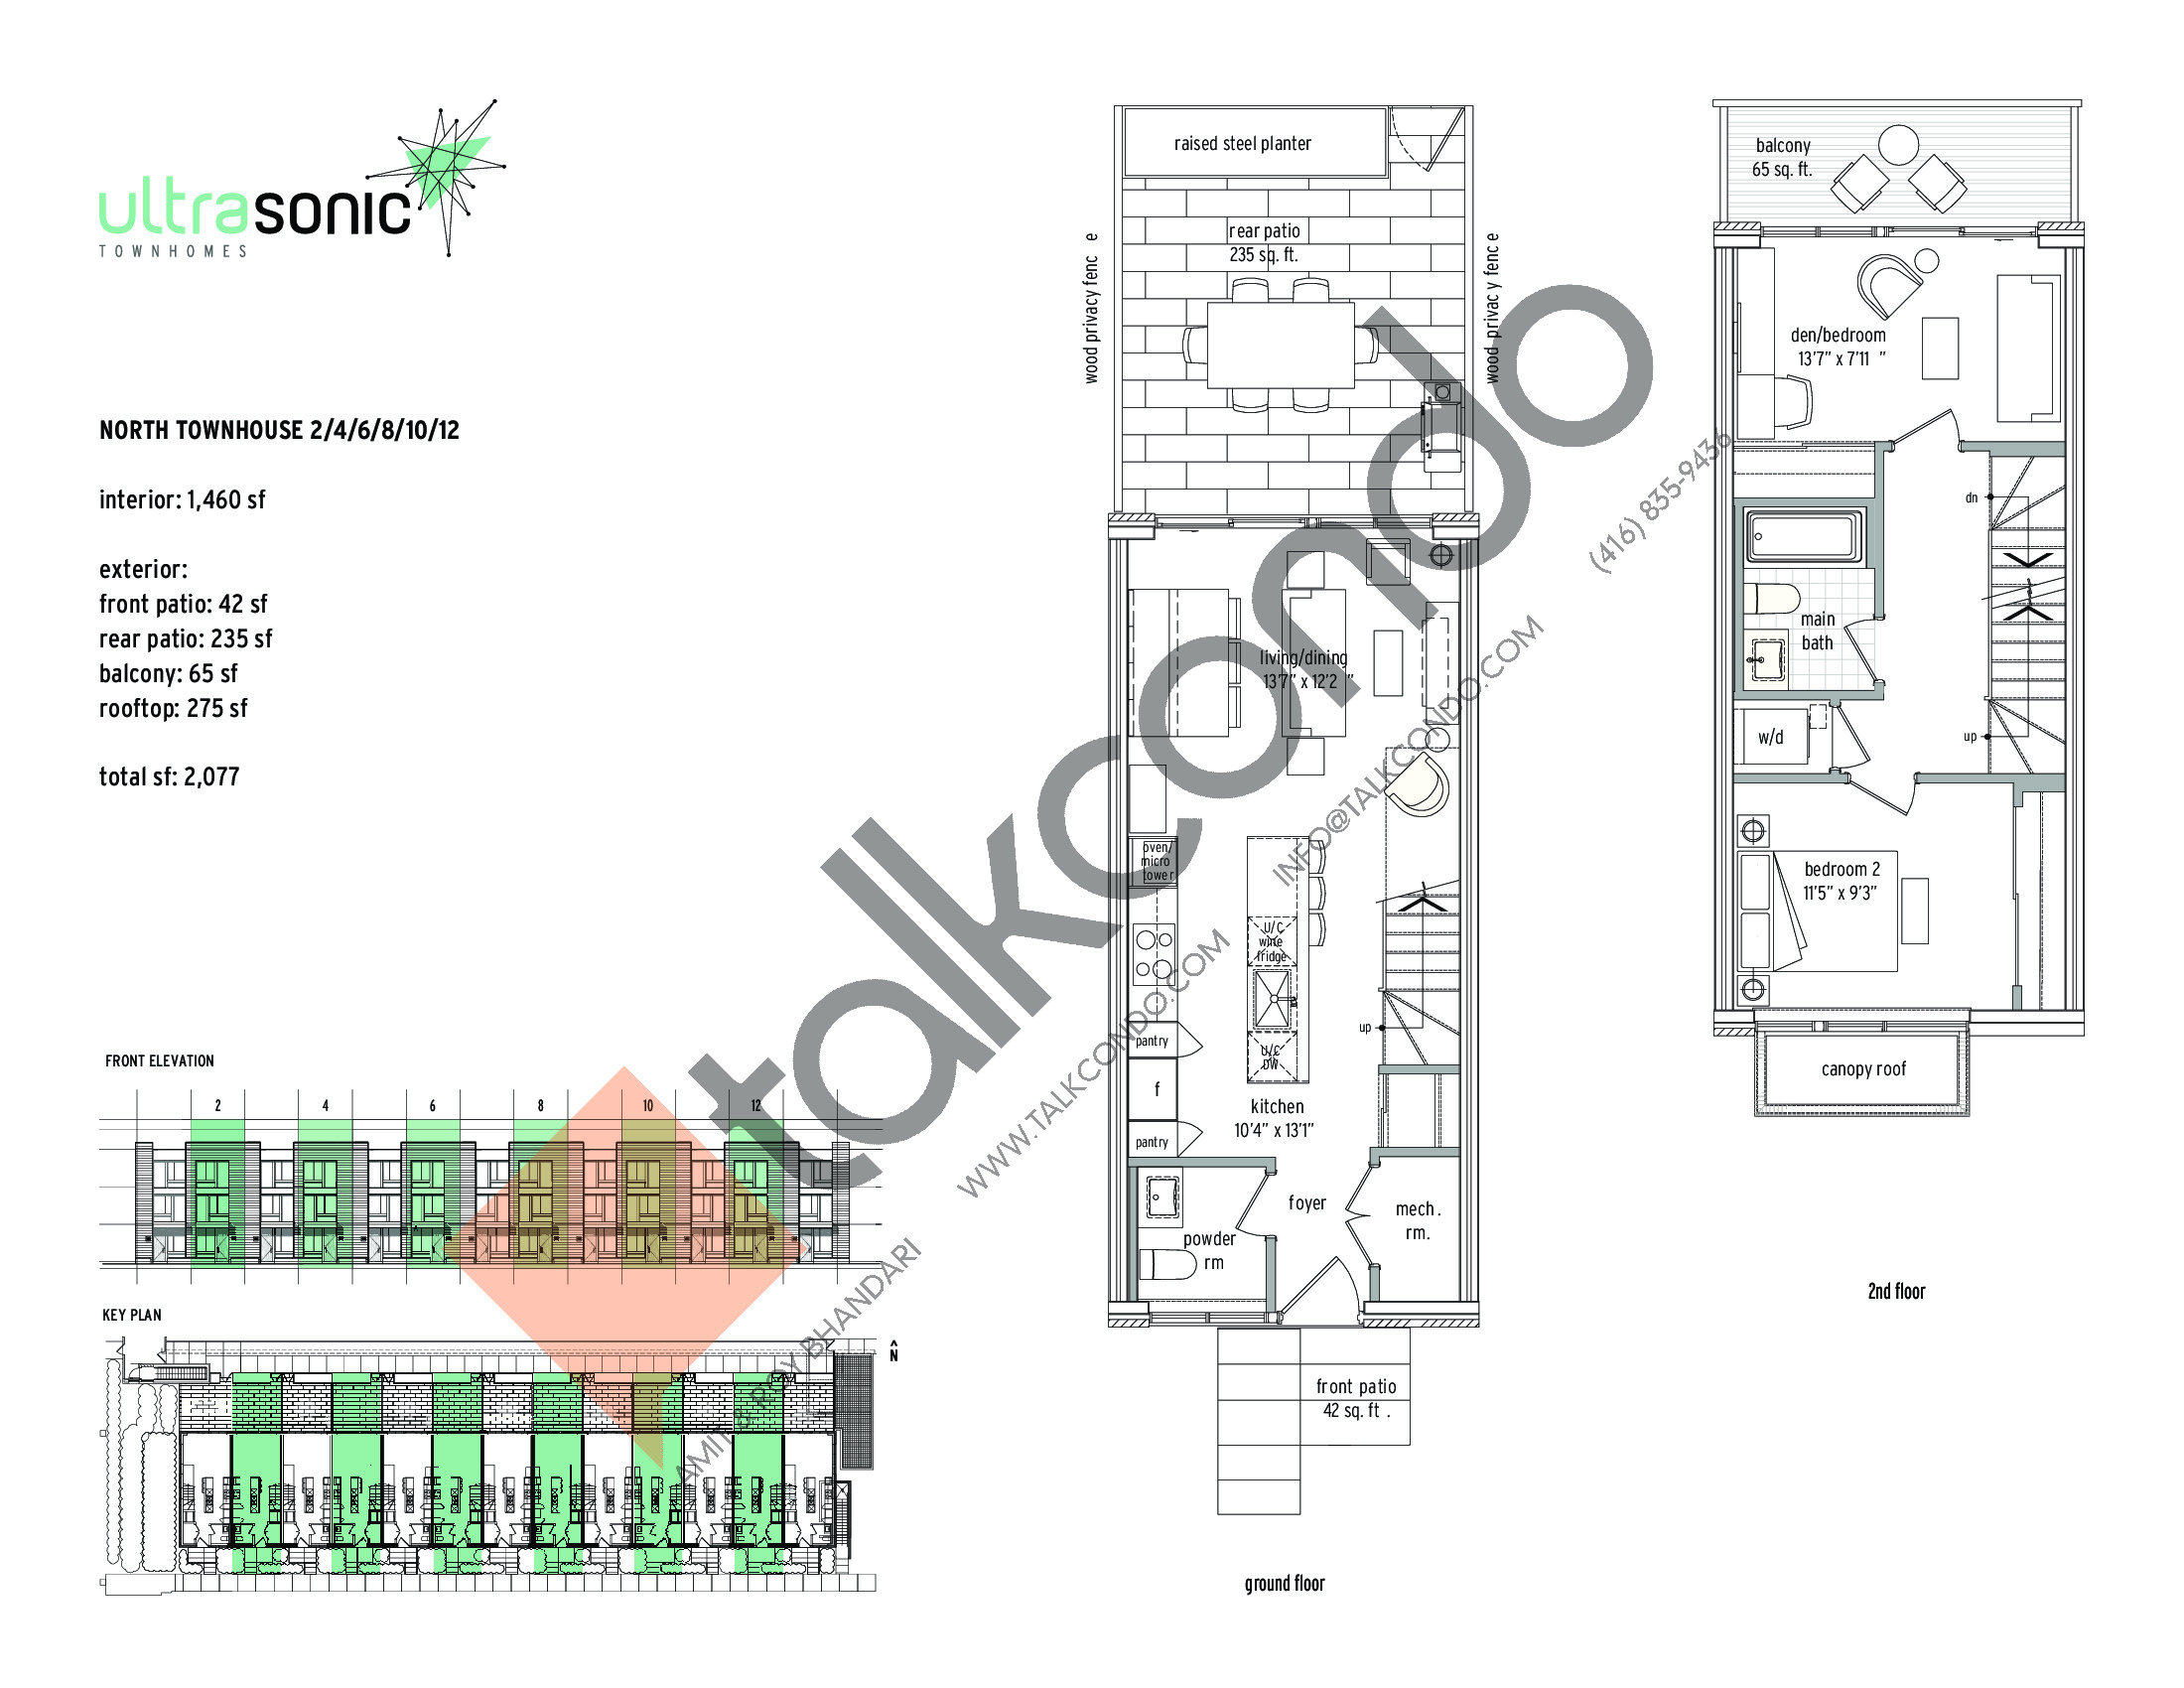 North Townhouse - 2 / 4 / 6 / 8 / 10 / 12 (1/2) Floor Plan at UltraSonic Towns - 1460 sq.ft